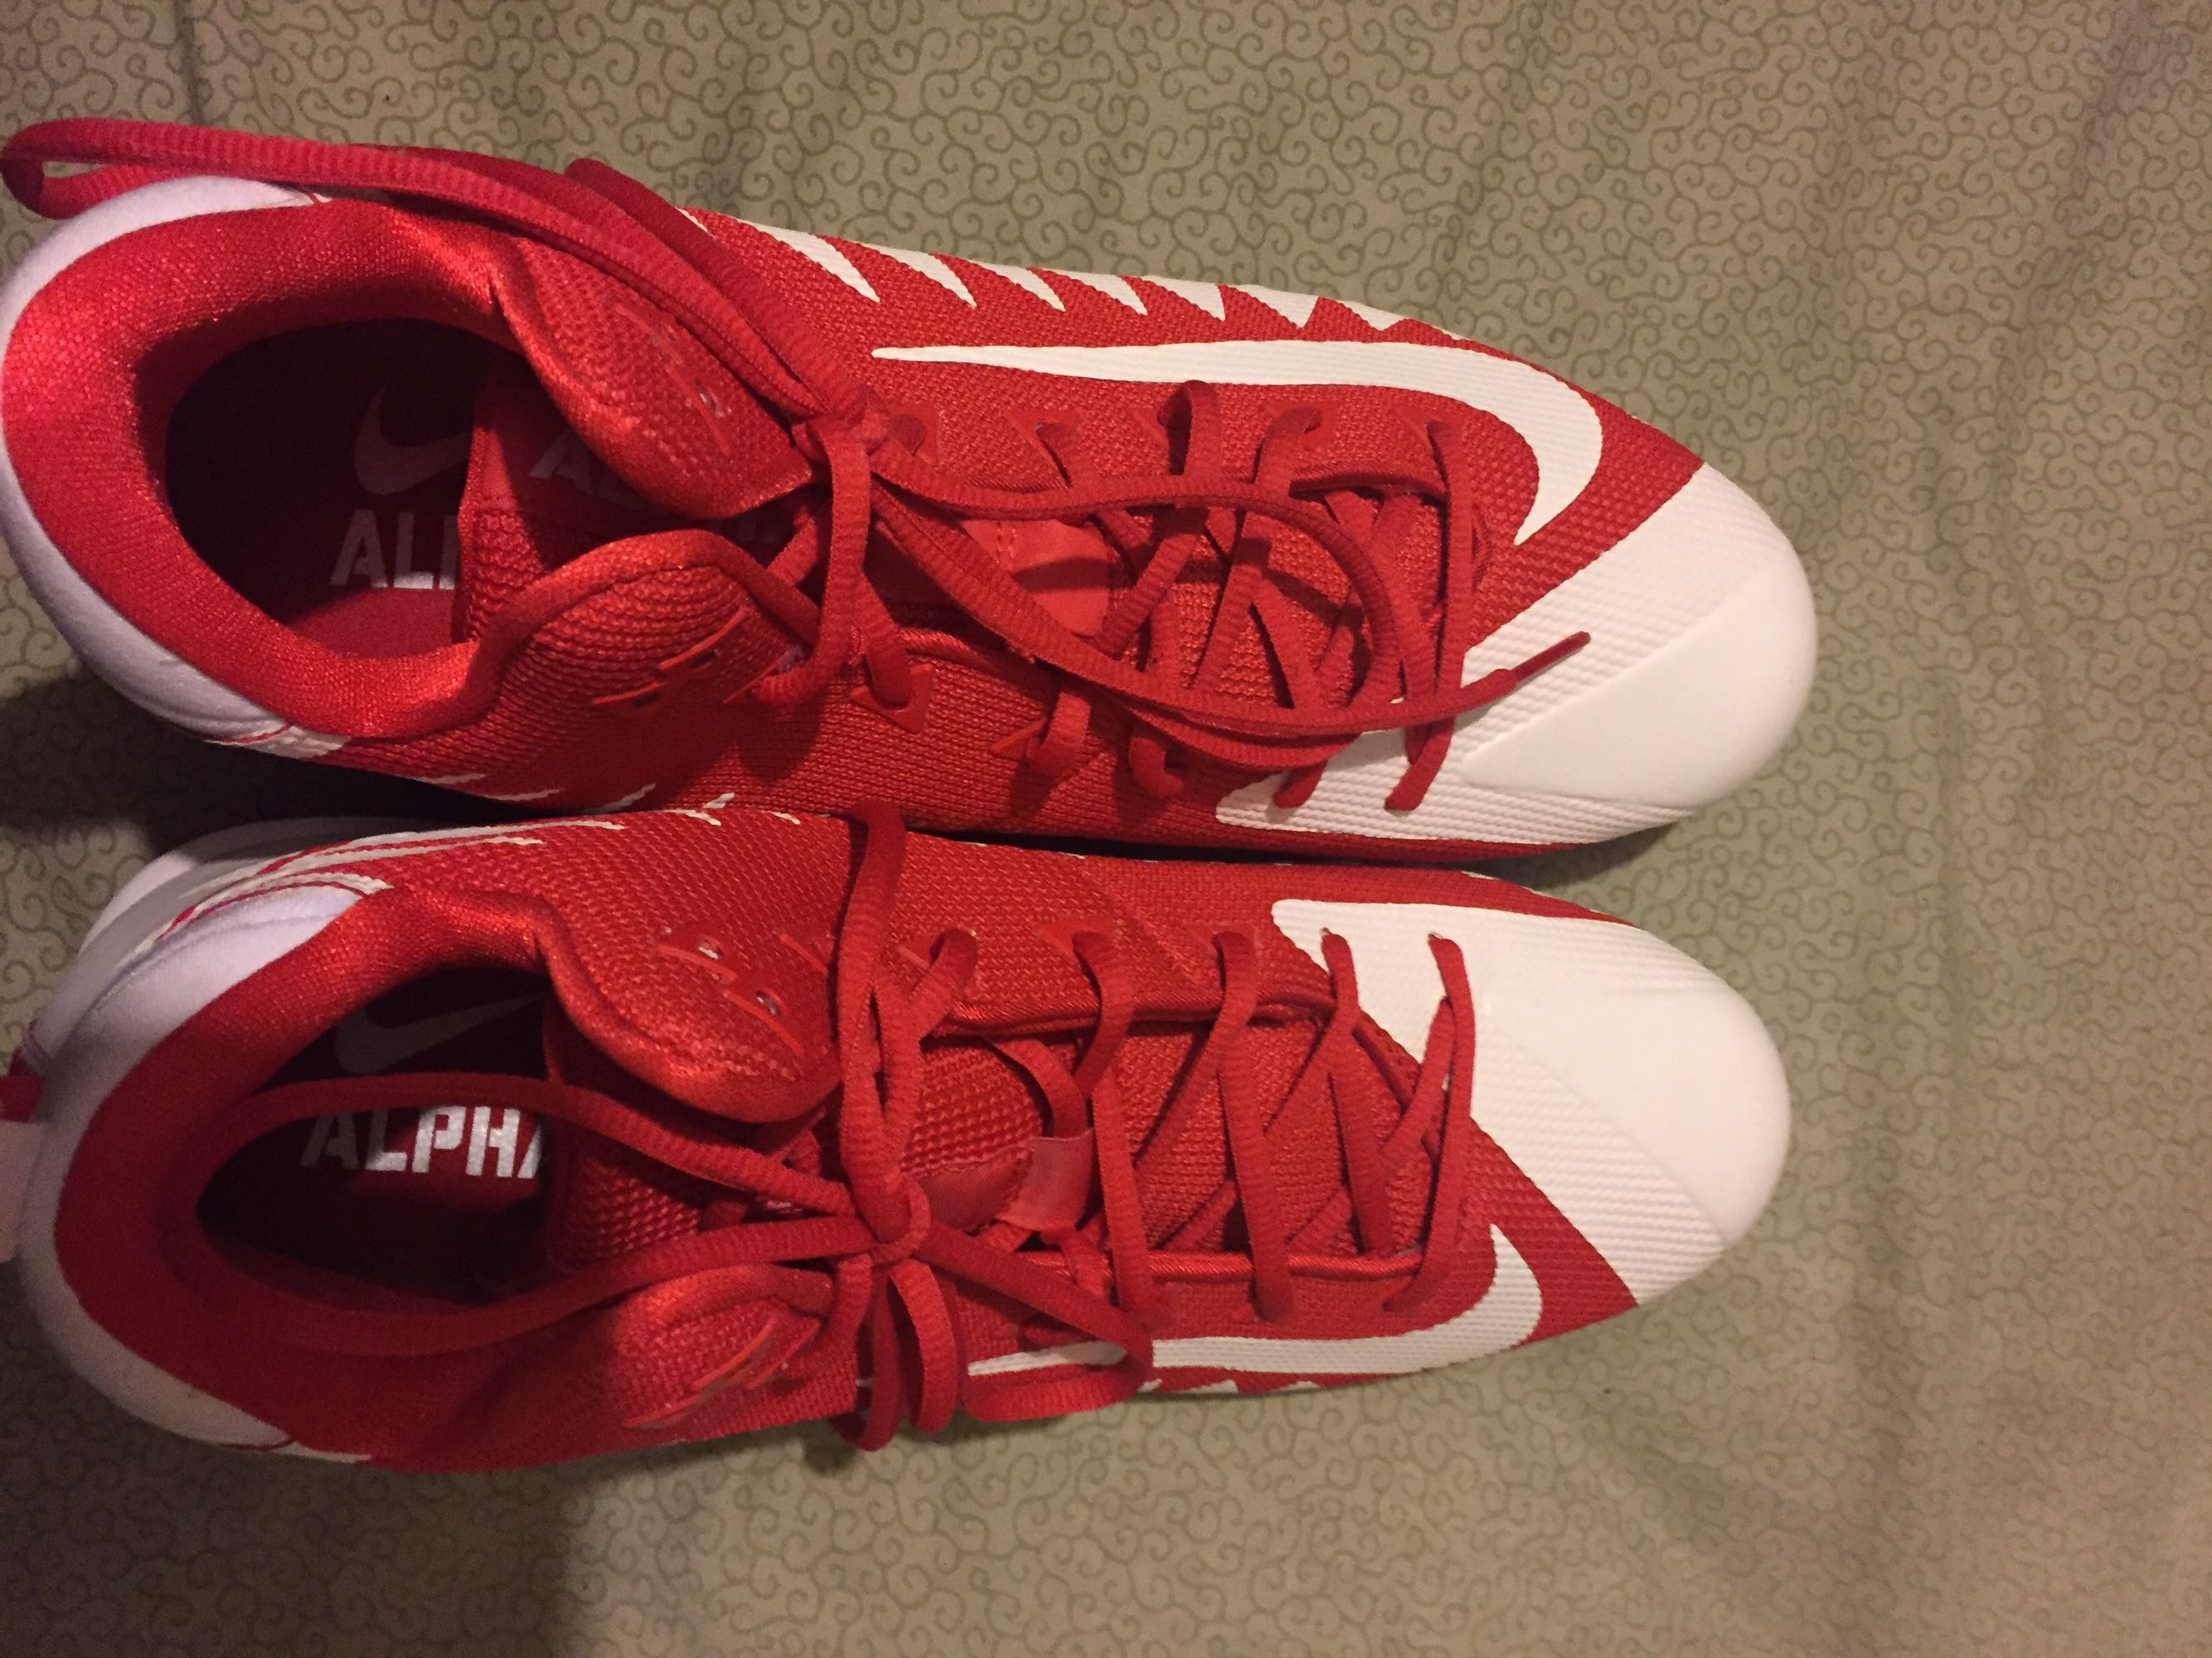 Sz 13 cleats. Never worn